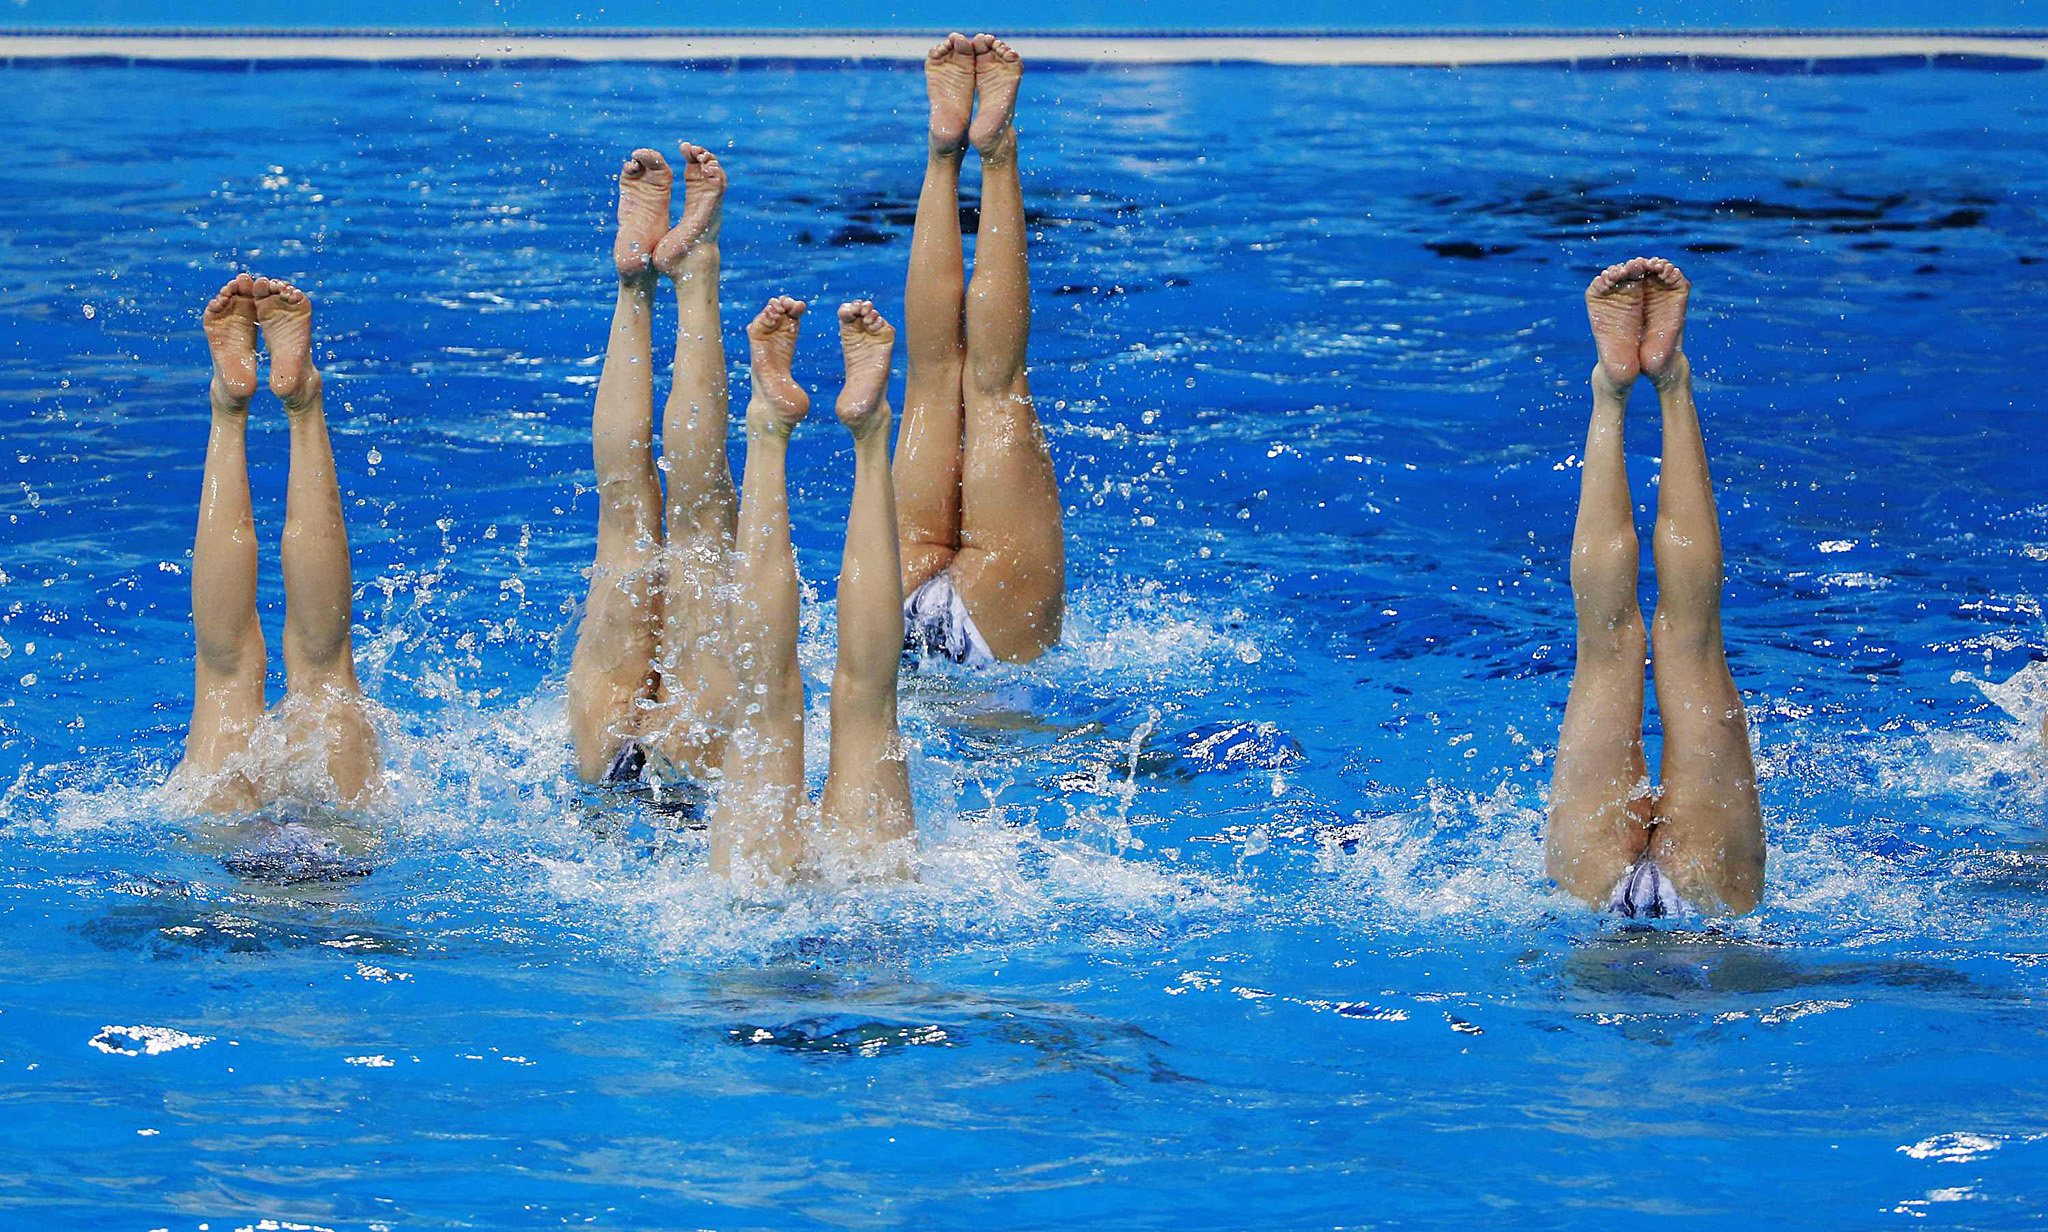 North Korea's synchronised swimming team take part in a practice session at Munhak Park Tae-hwan Aquatics Center ahead of the 17th Asian Games in Incheon...North Korea's synchronised swimming team take part in a practice session at Munhak Park Tae-hwan Aquatics Center ahead of the 17th Asian Games in Incheon September 17, 2014. The 17th Asian Games run from September 19 to October 4.    REUTERS/Kim Kyung-Hoon (SOUTH KOREA - Tags: SPORT SWIMMING)